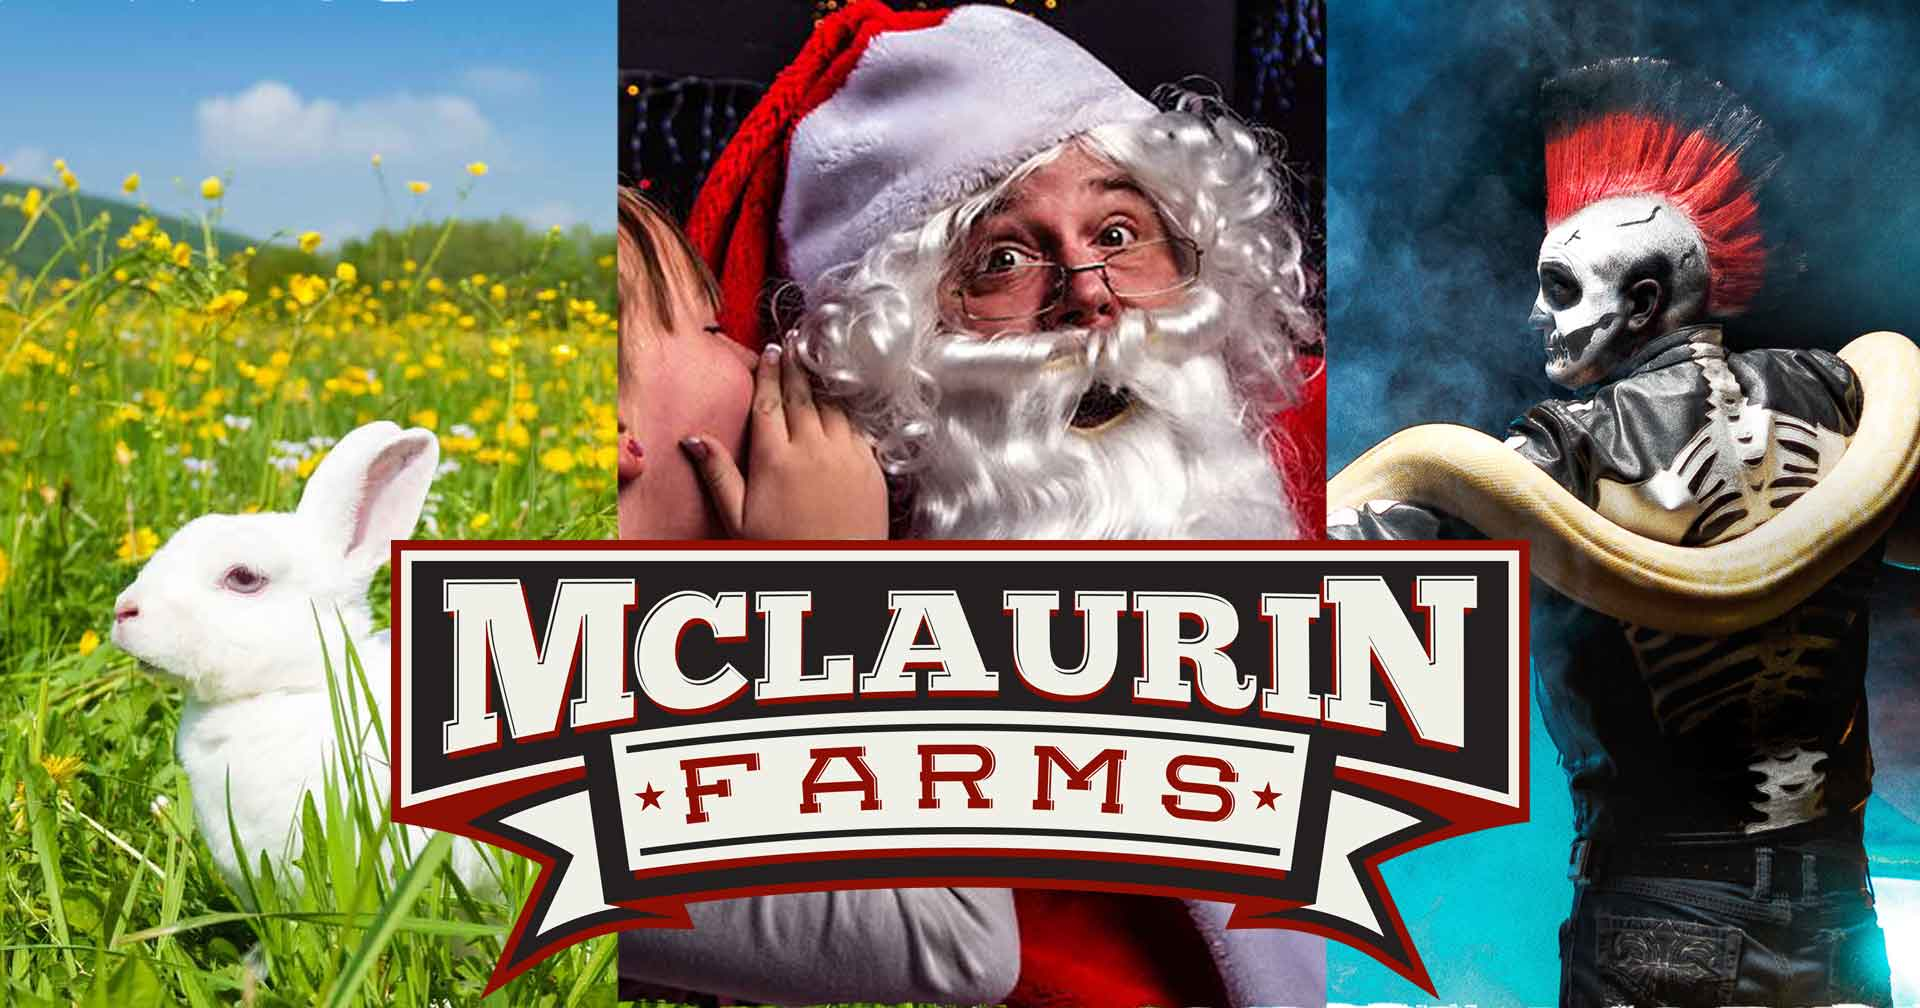 McLaurin Farms - Where Traditions are Made - Seasonal Family